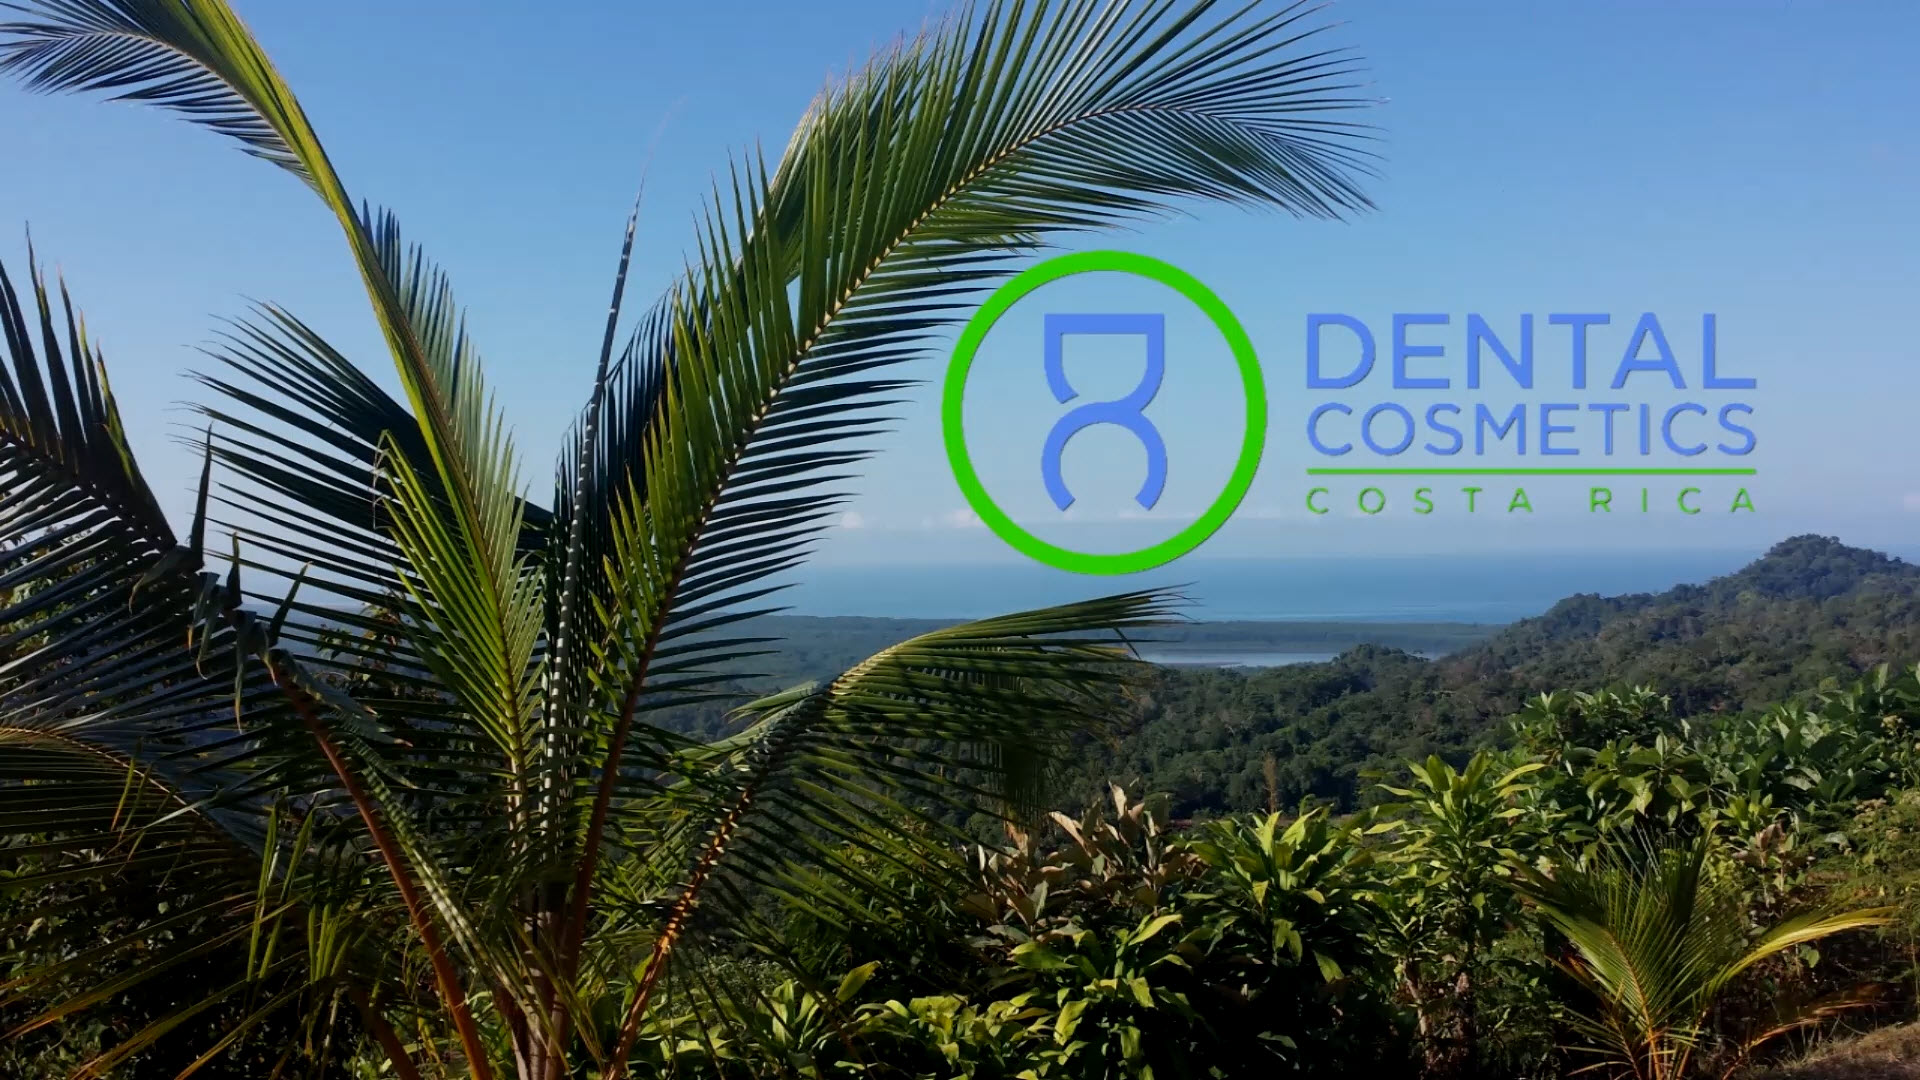 Dental Cosmetics Affordable and High Quality Dental Work in Costa Rica